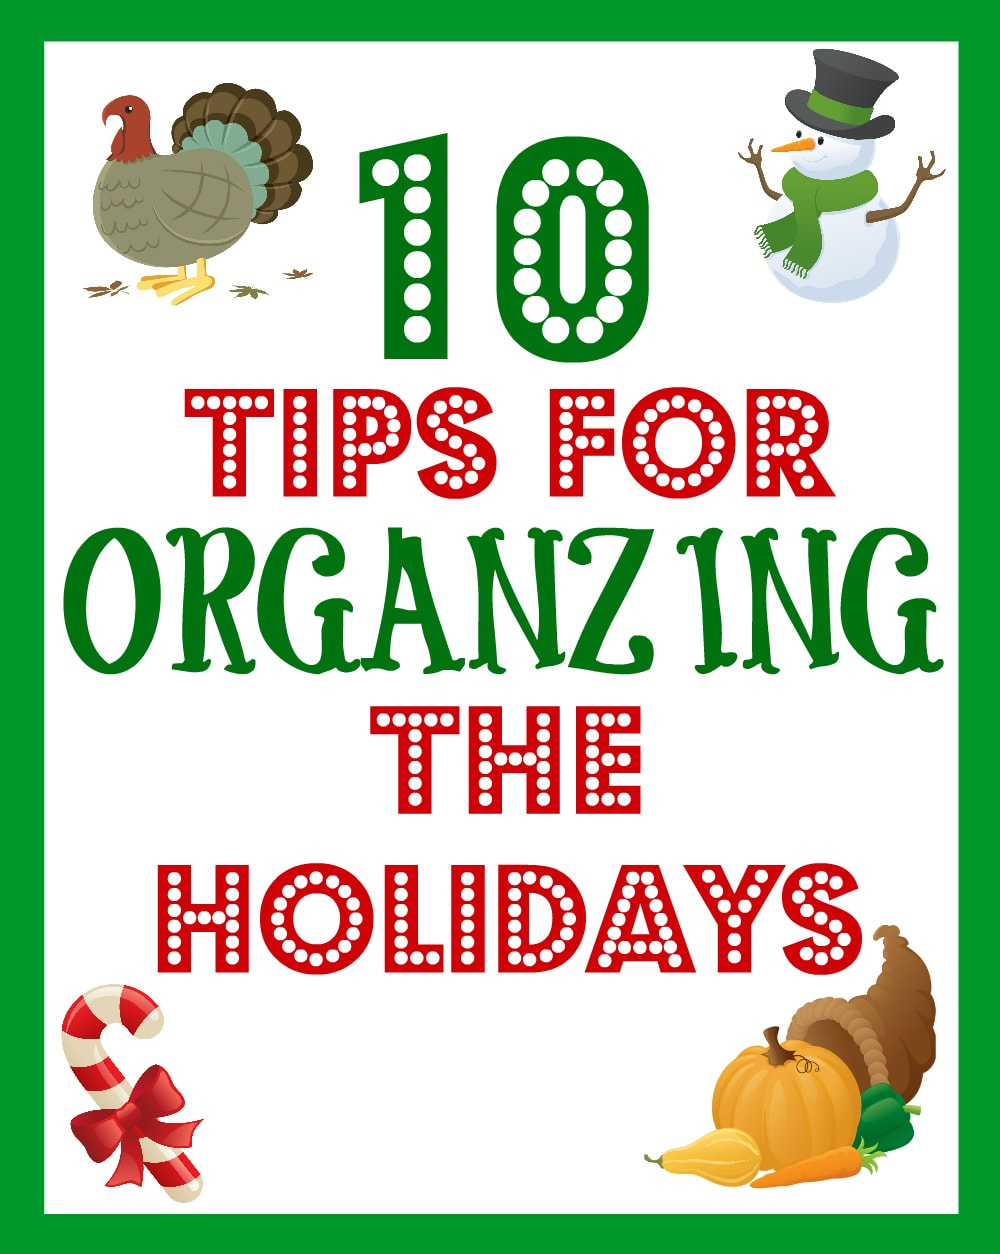 10 Tips for Organizing the Holidays